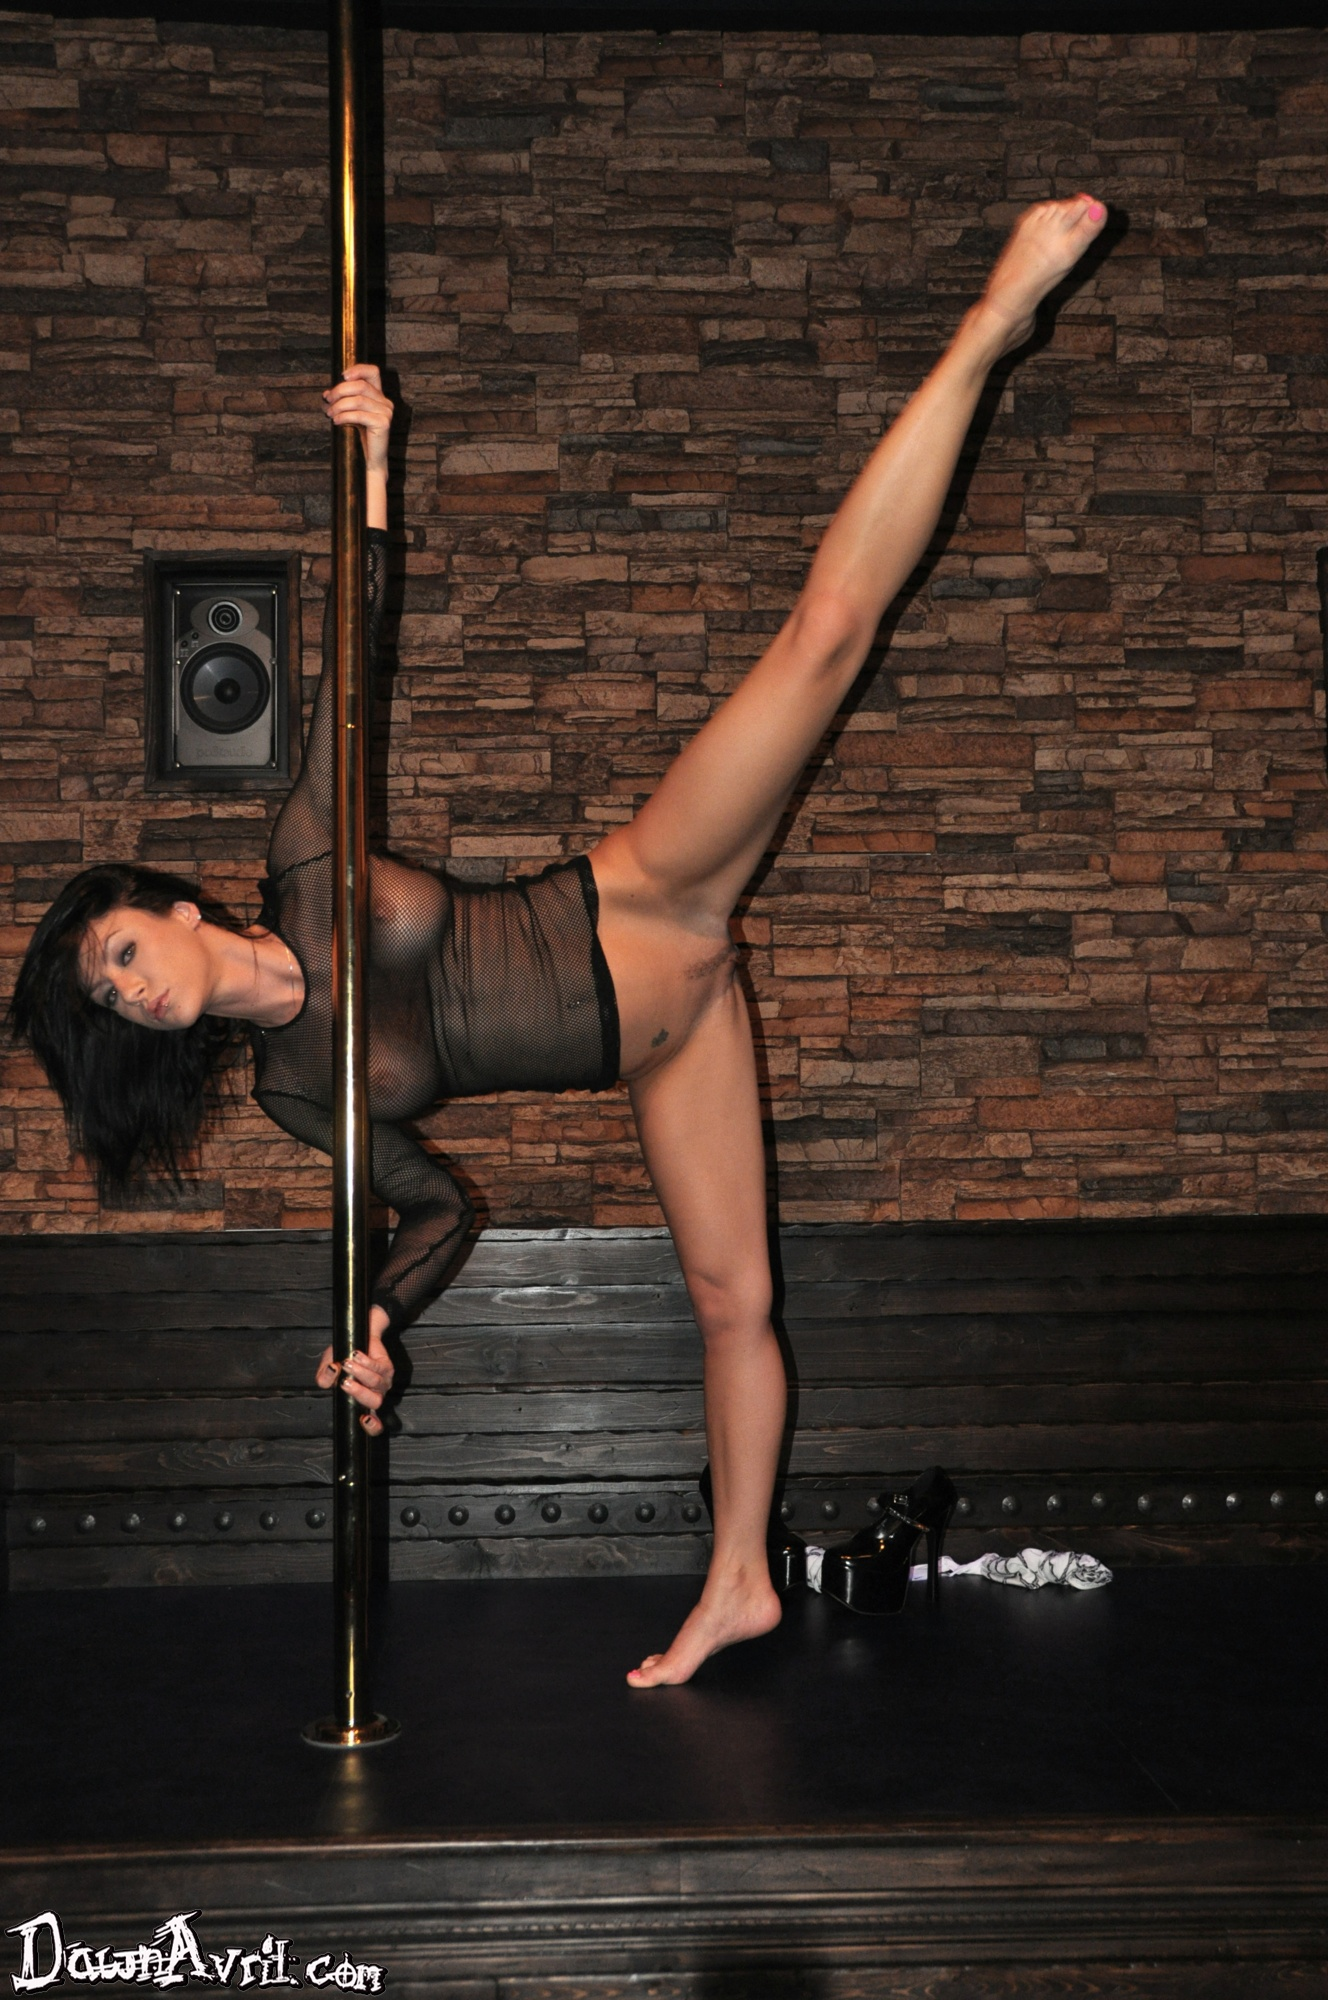 girls stripping on poles naked